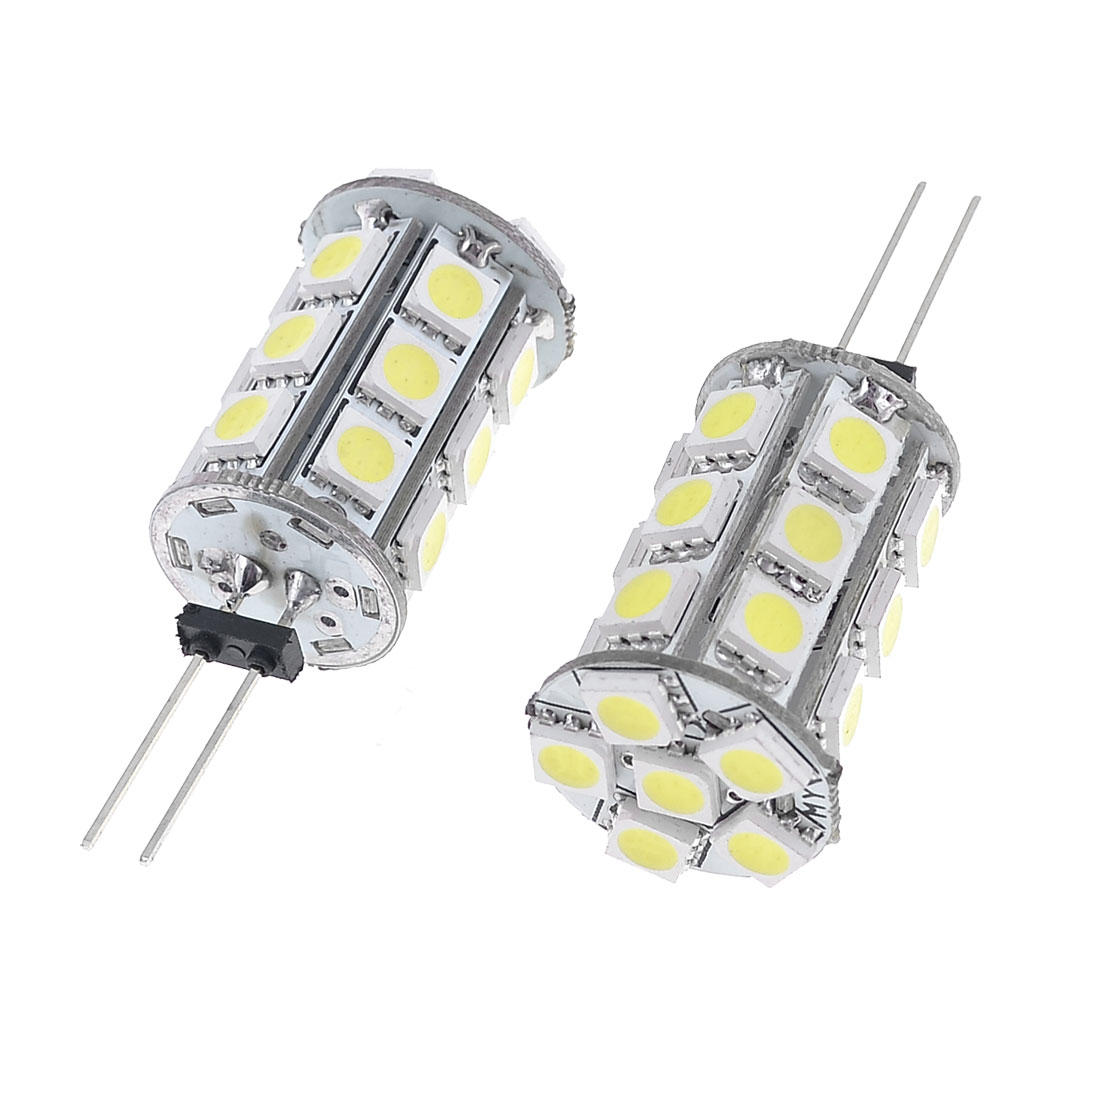 2 Pcs G4 Base White 5050 SMD 24 LED Bulb Light Lamp for Automobile Car